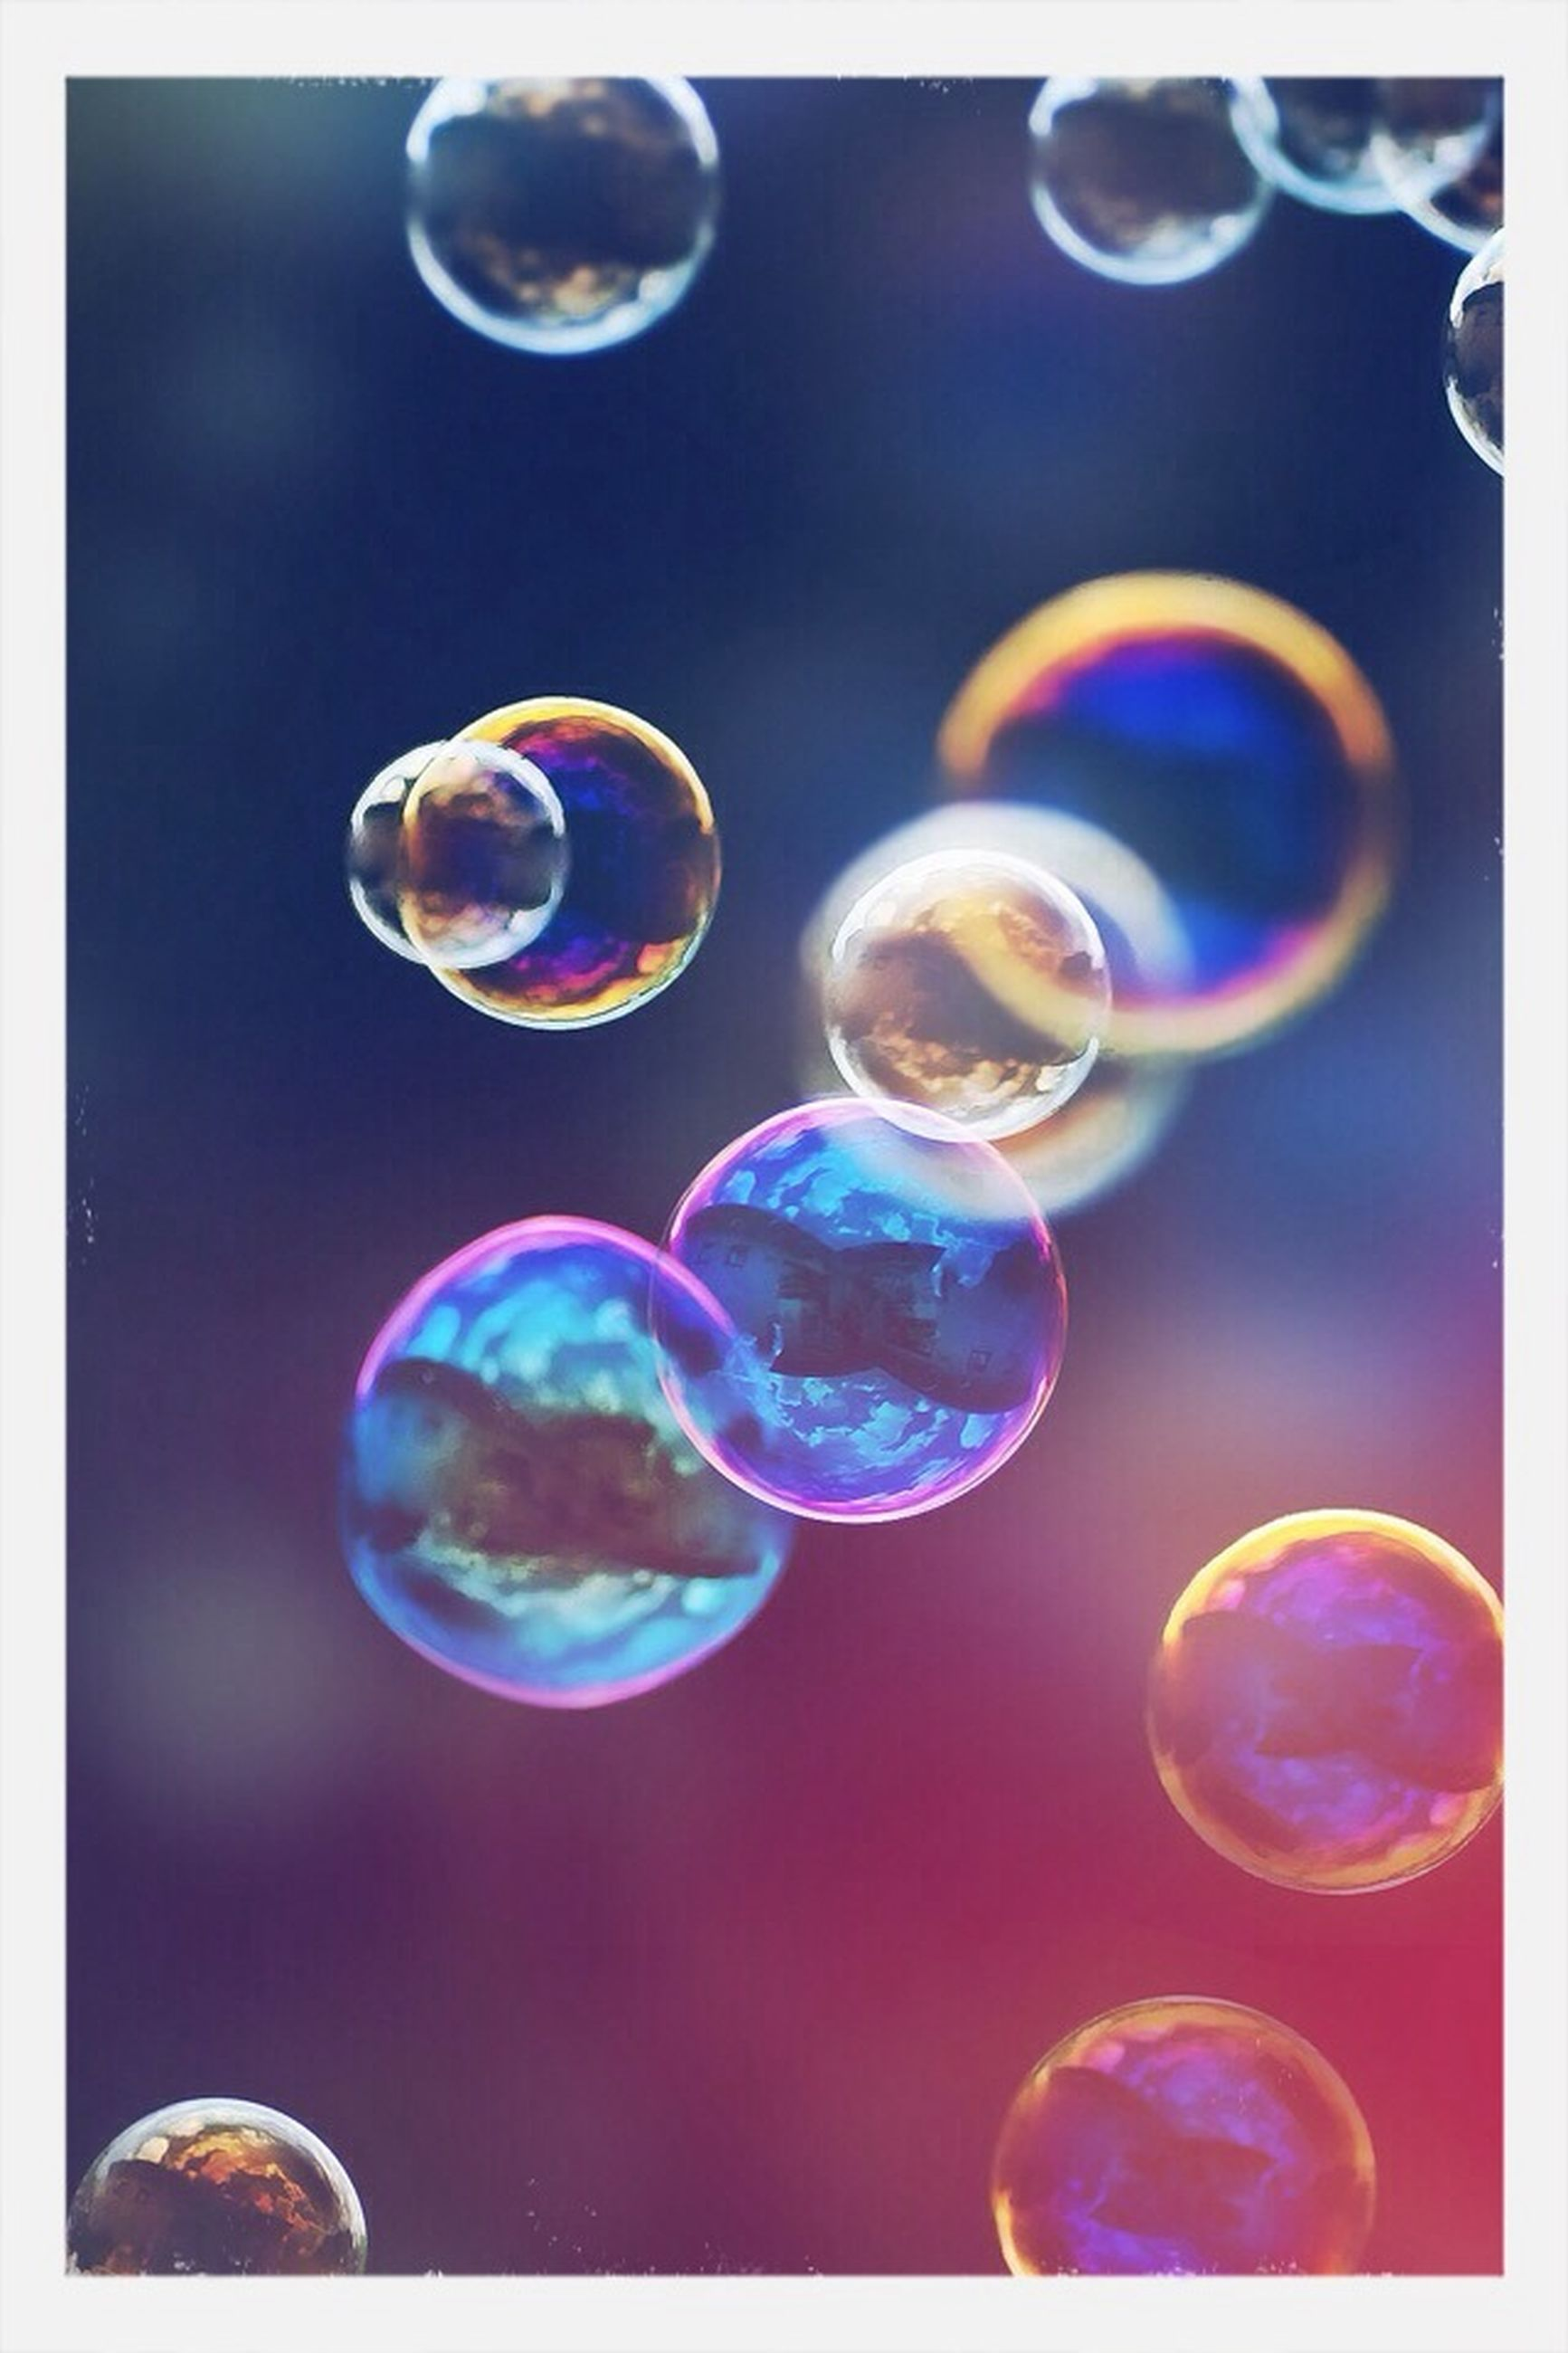 bubble, transparent, water, fragility, close-up, blue, mid-air, drop, sphere, jellyfish, beauty in nature, glass - material, nature, multi colored, circle, no people, focus on foreground, underwater, full frame, soap sud